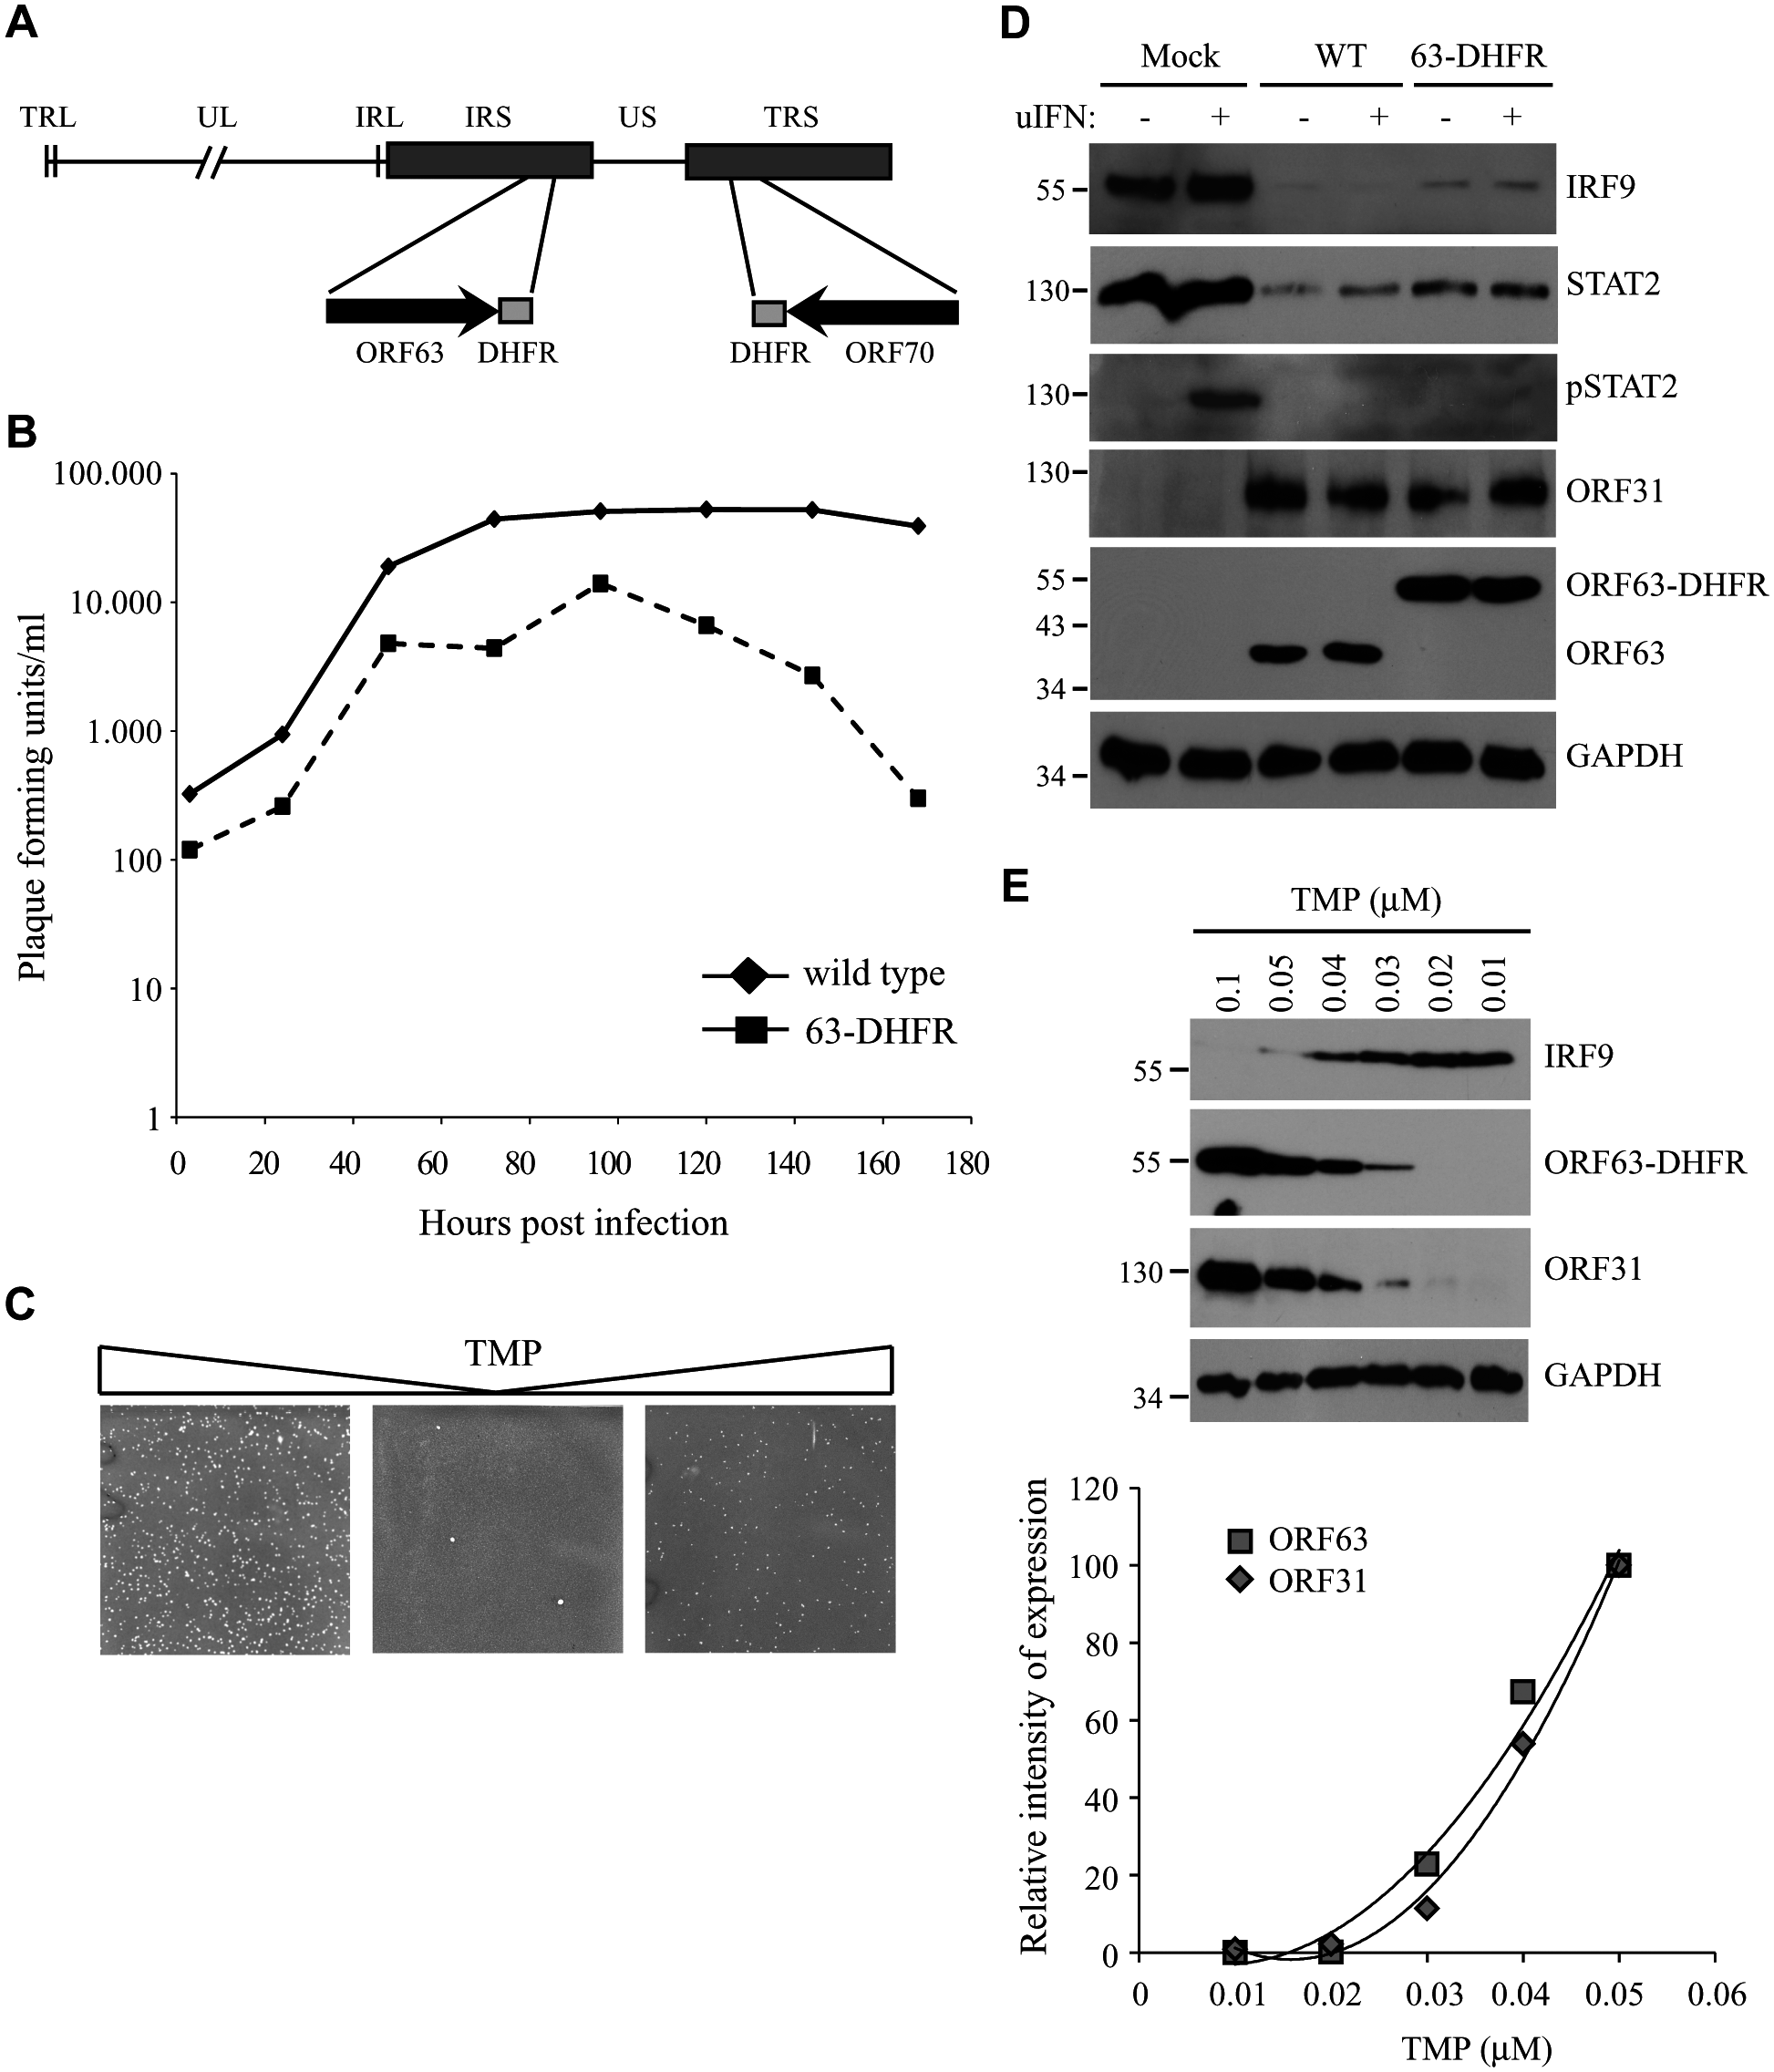 The characteristics of a conditionally ORF63/ORF70-expressing mutant virus.